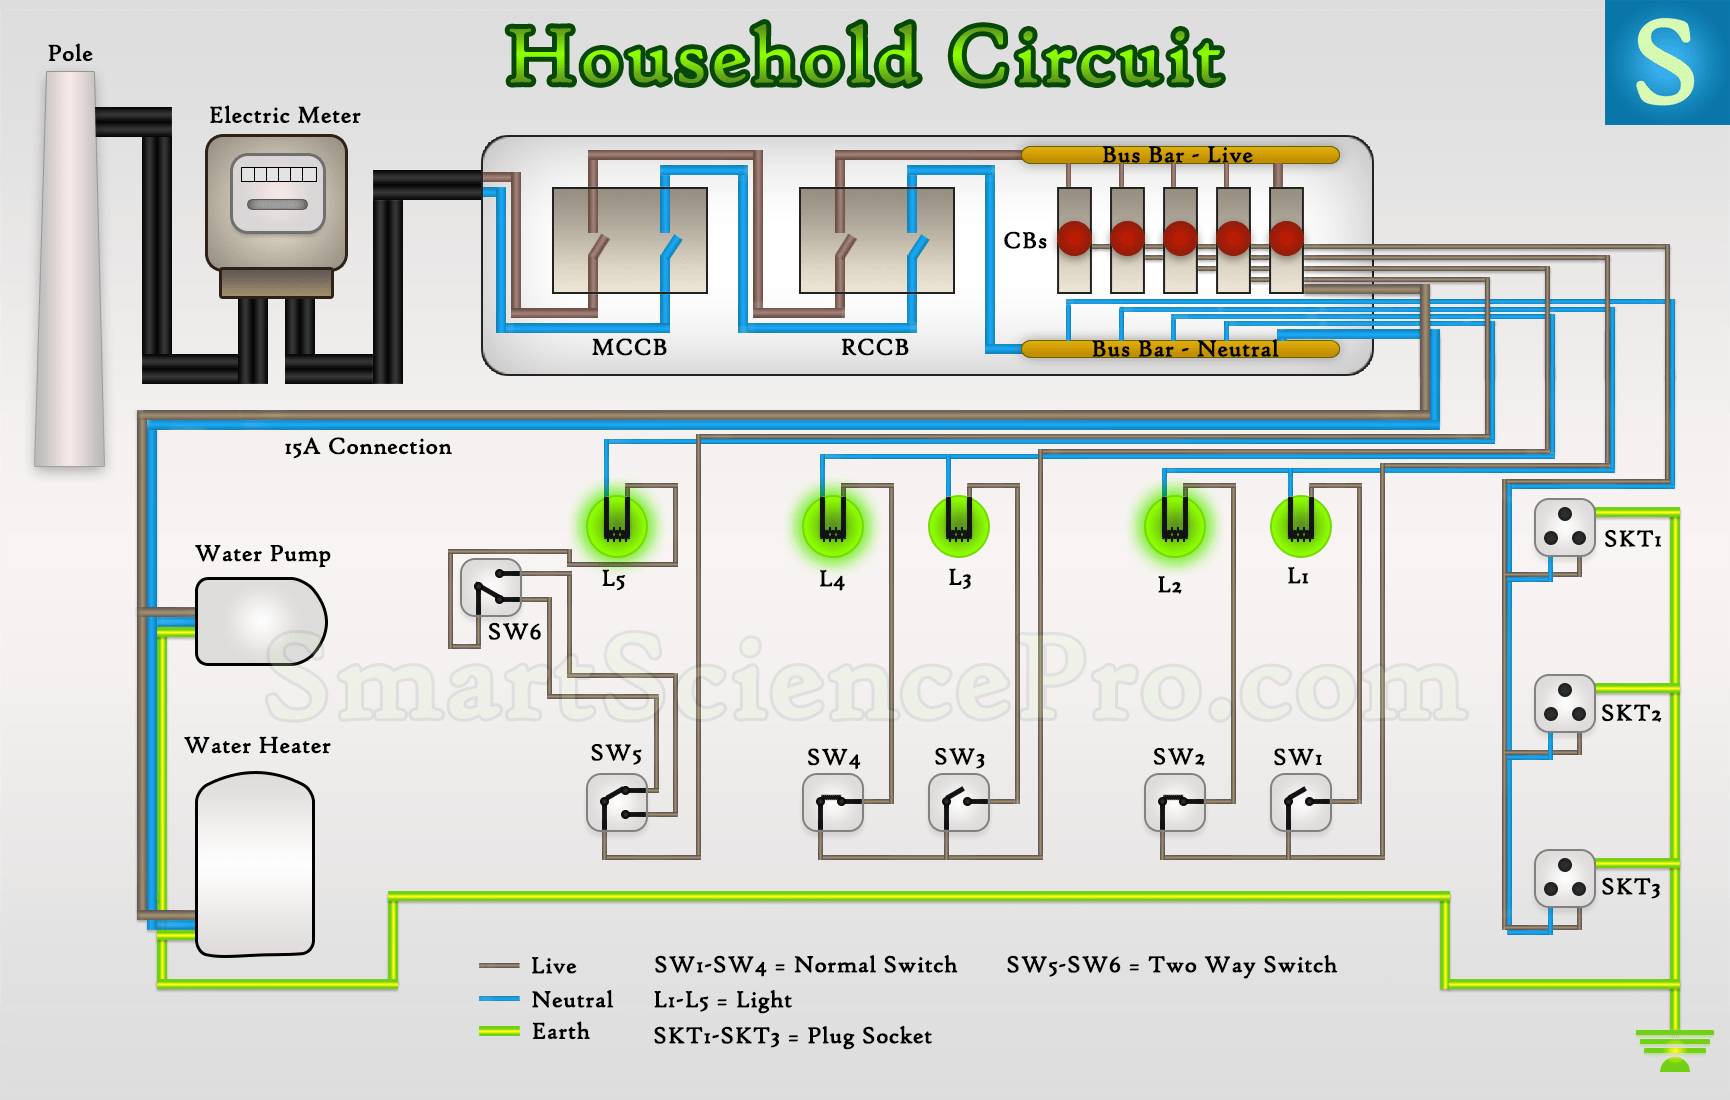 Swell A Typical House Electrical Wiring In Wiring Diagram Wiring Cloud Lukepaidewilluminateatxorg